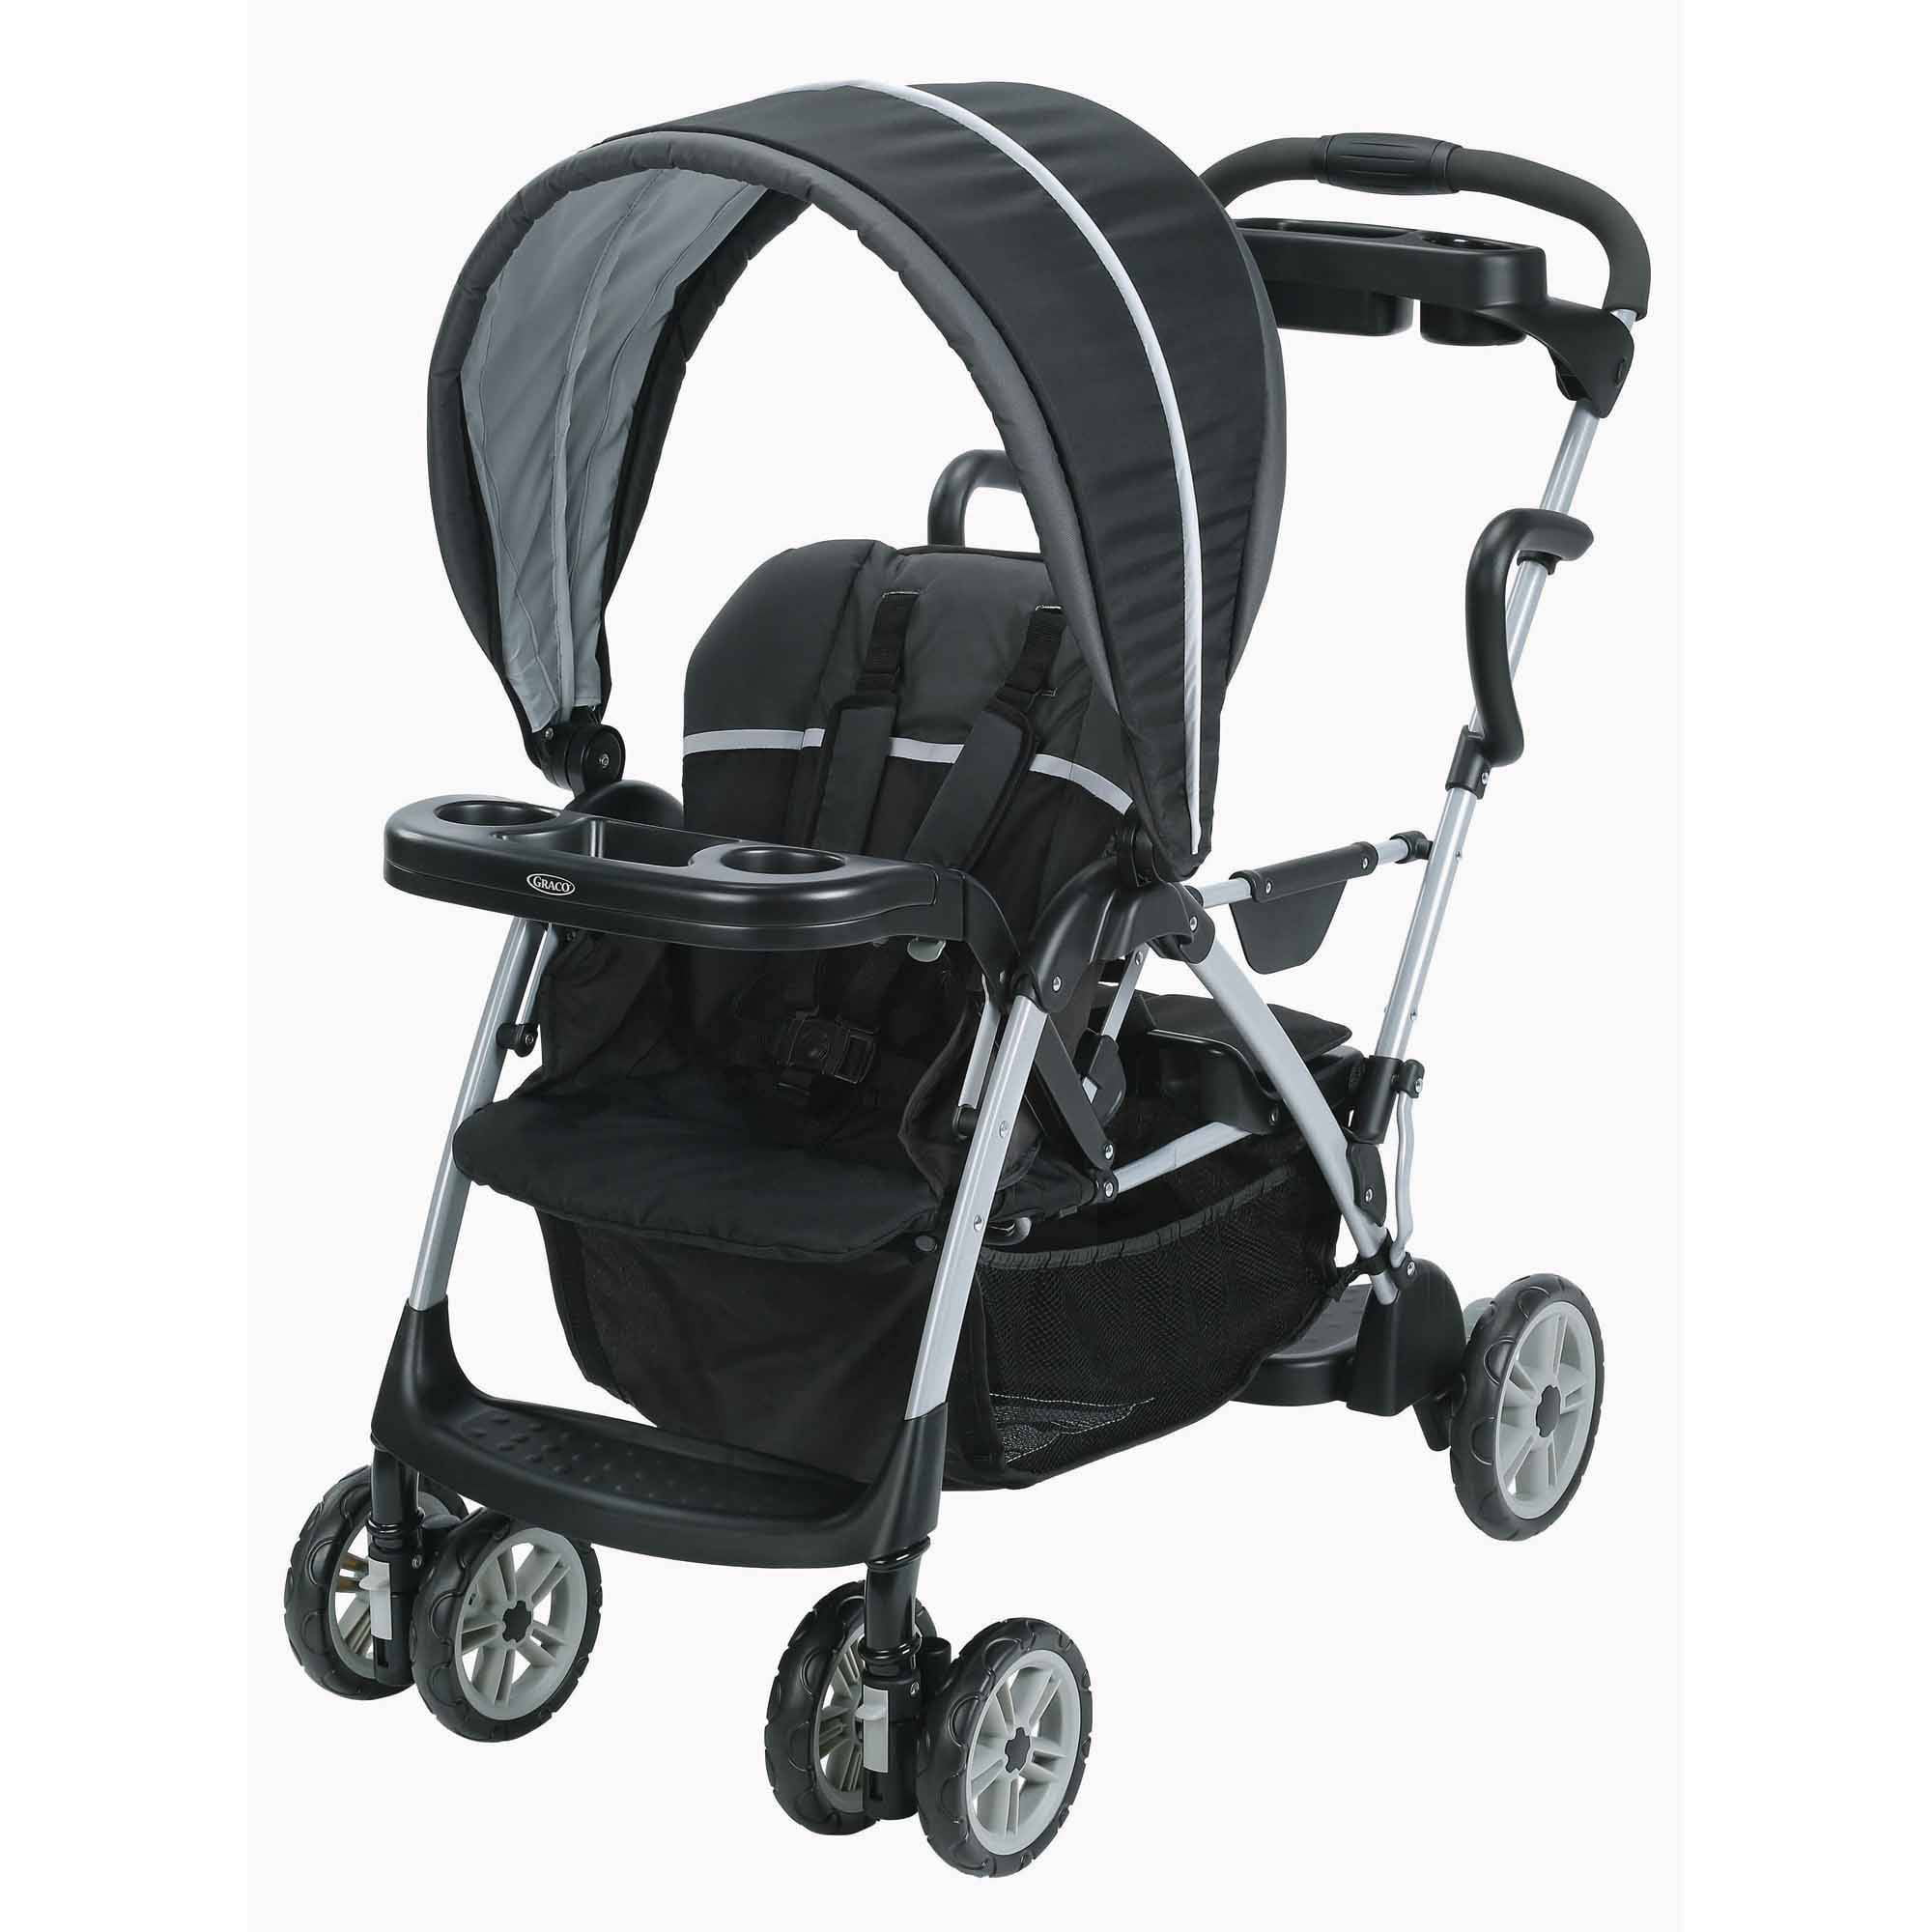 Graco Room For 2 Connect Stand & Ride Double Stroller Gotham Walmart